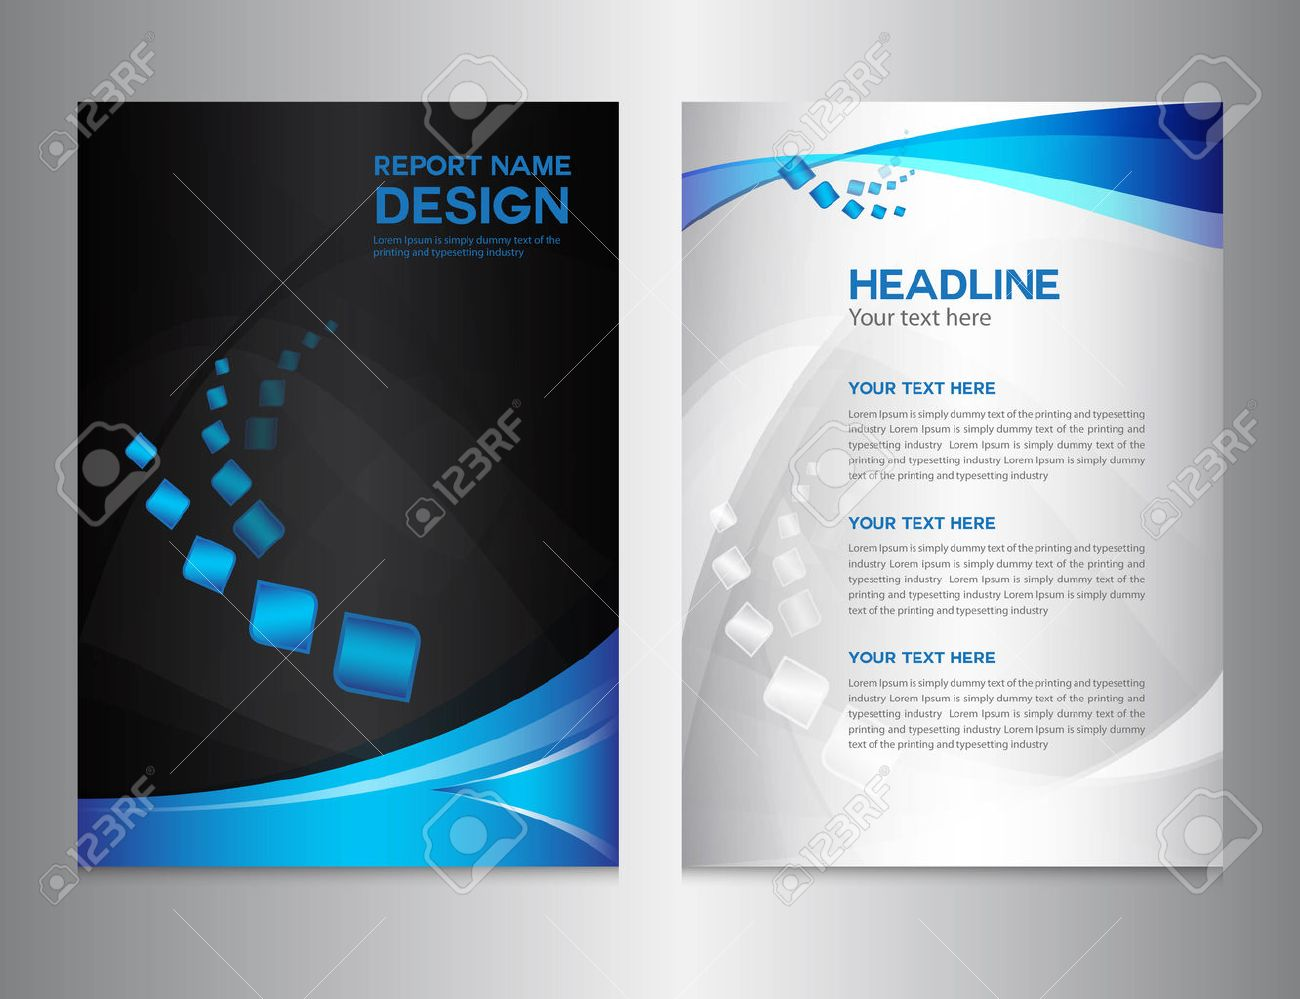 company profile design template